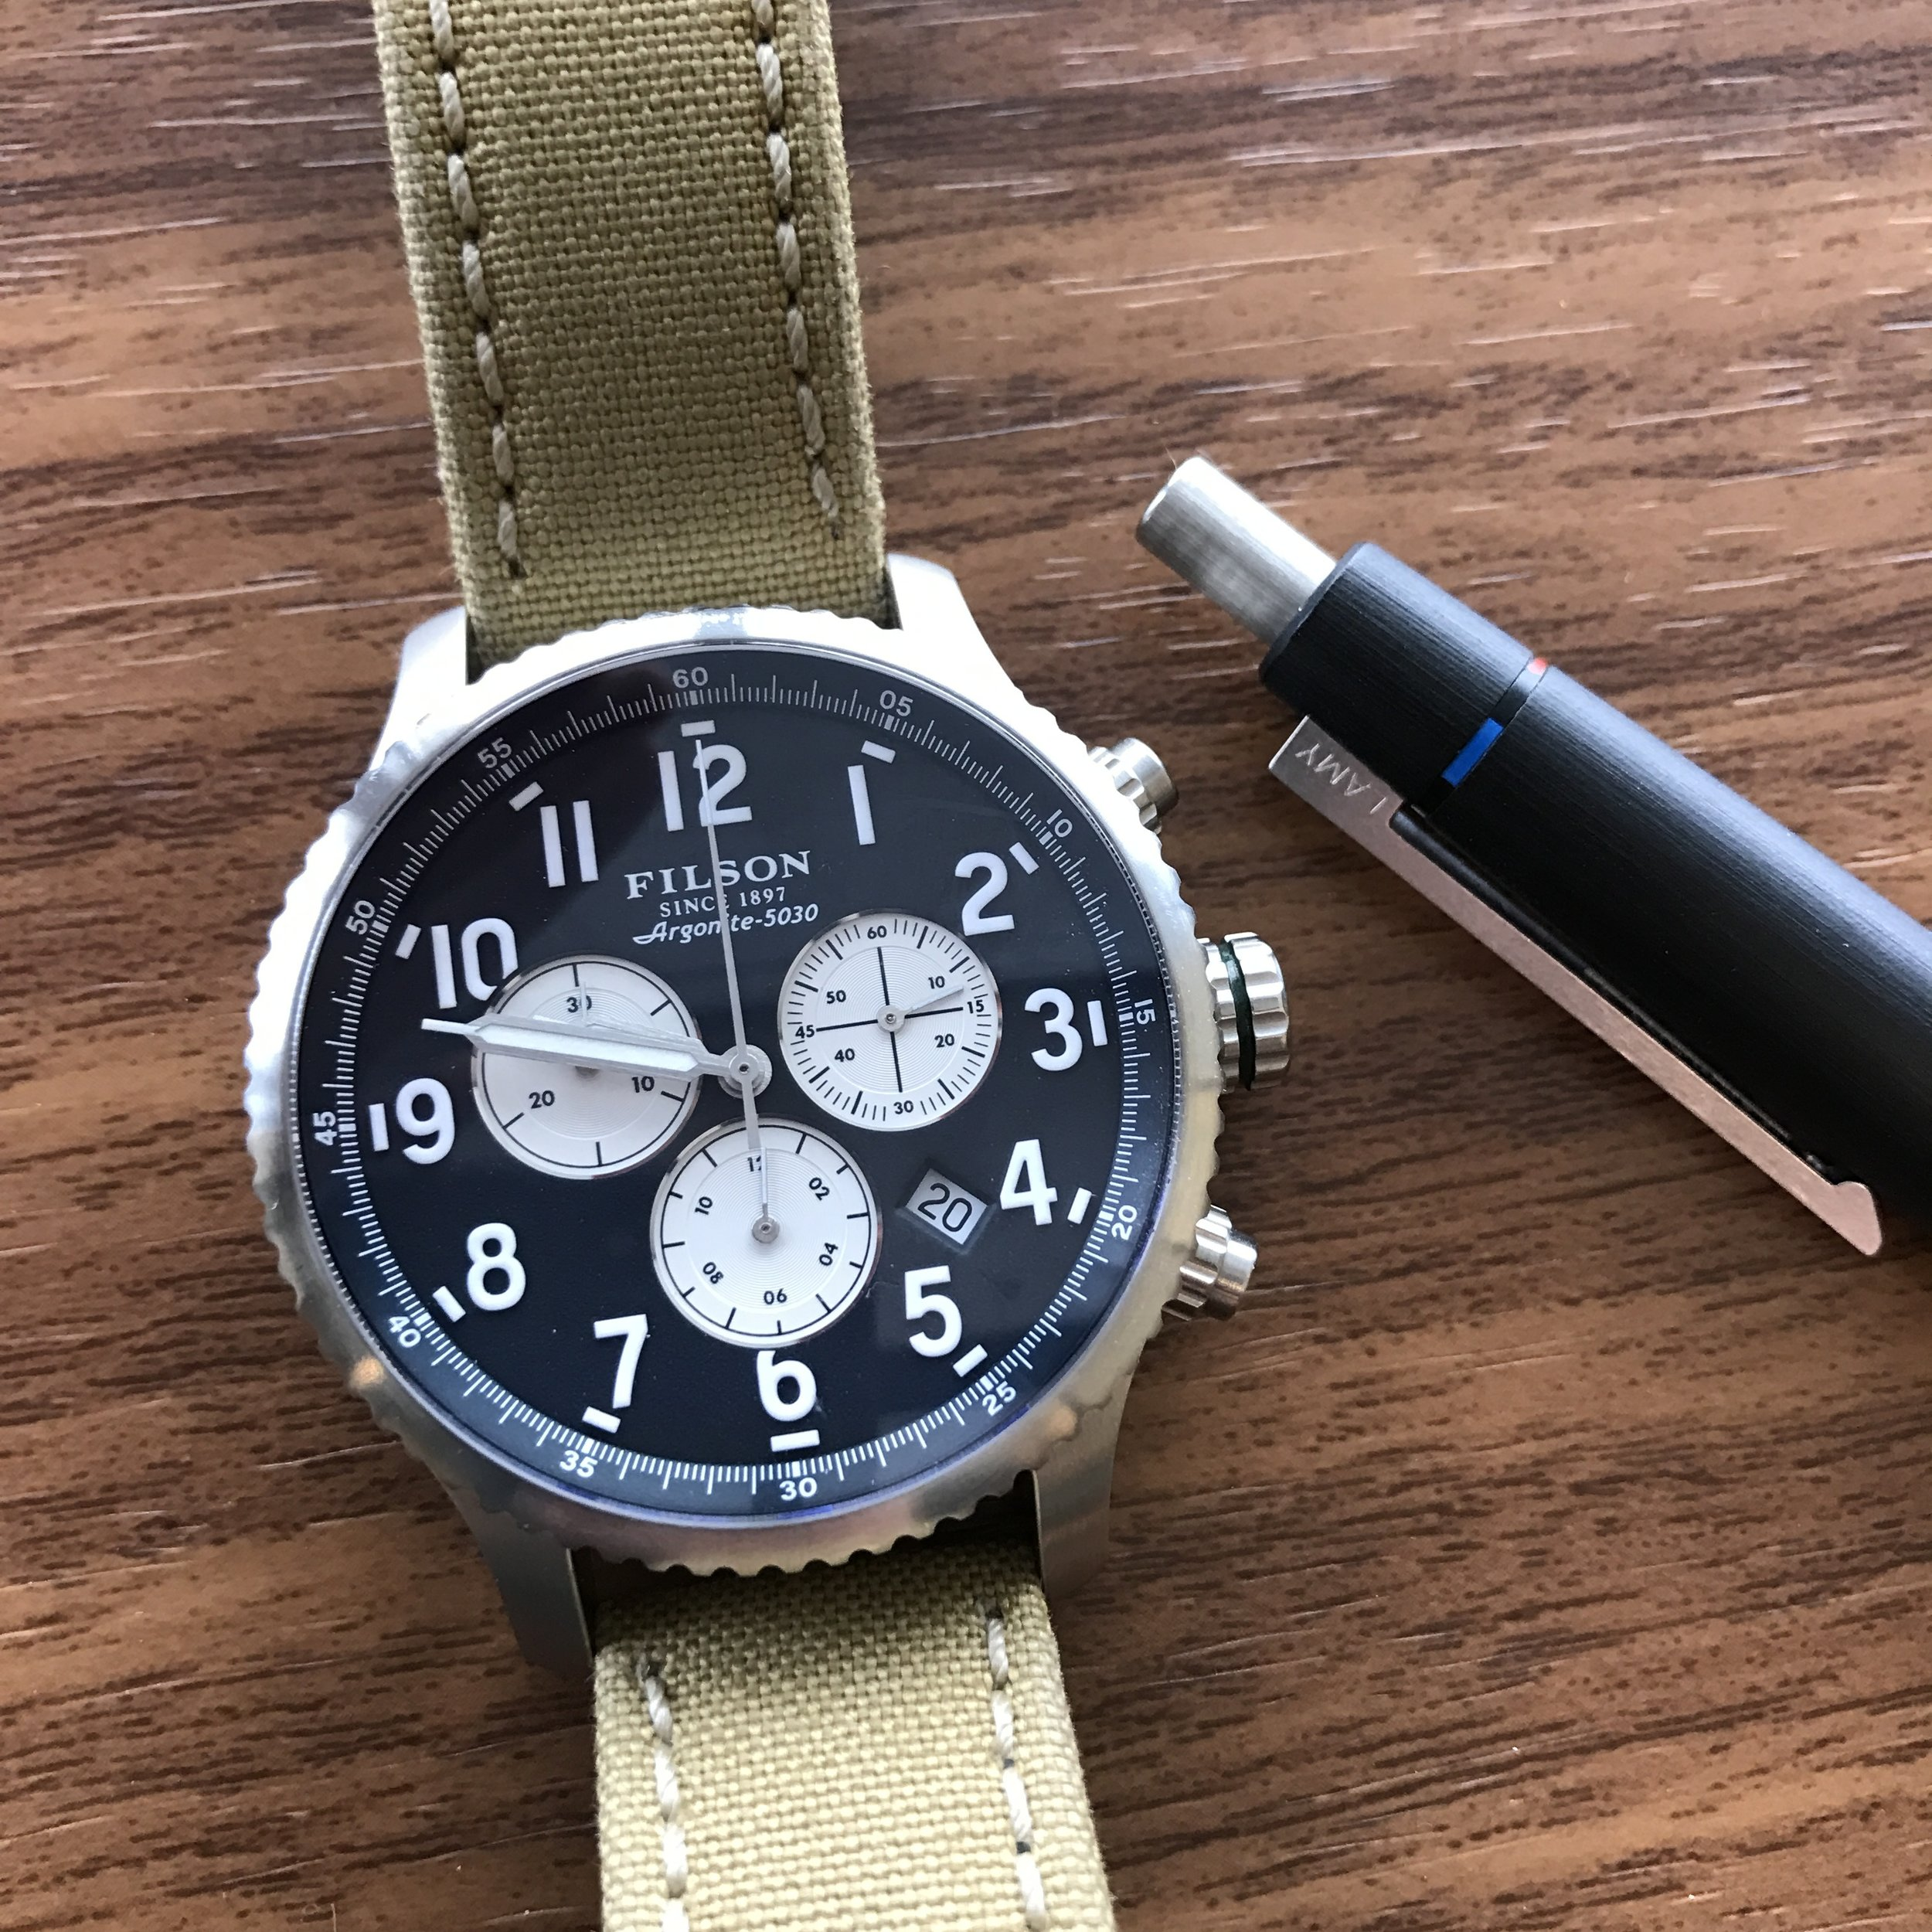 Pens and Watches - A dangerous combination.